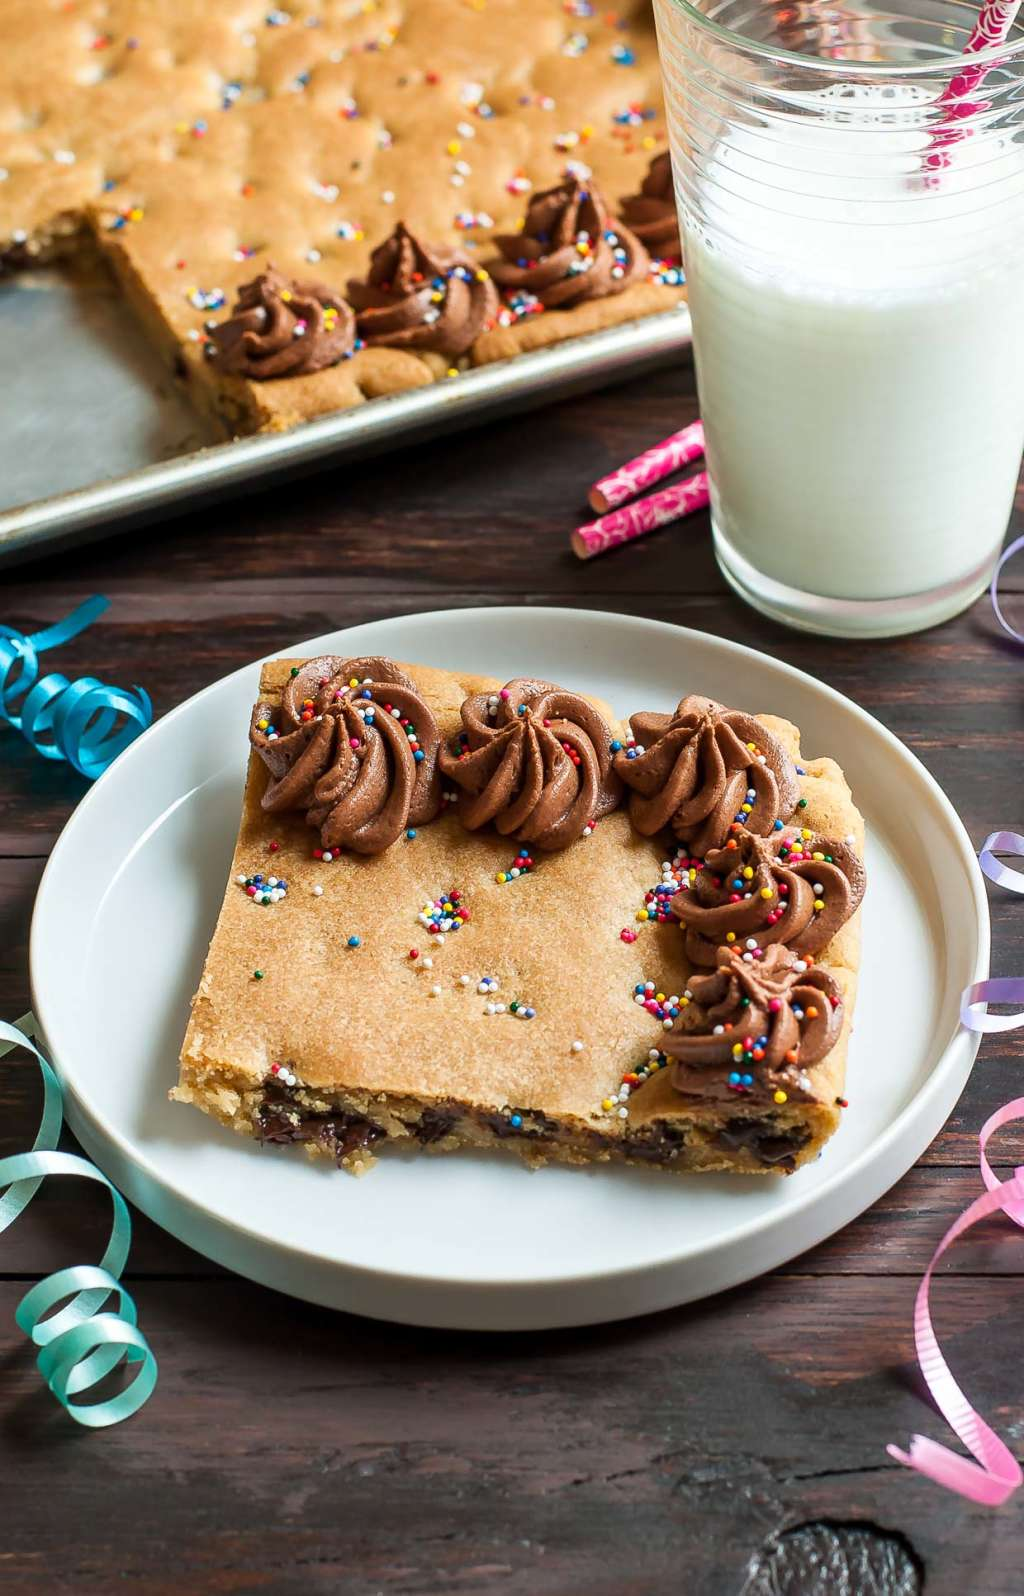 This Chocolate-Peanut Butter Cookie Cake Is Your New Go-To Dessert